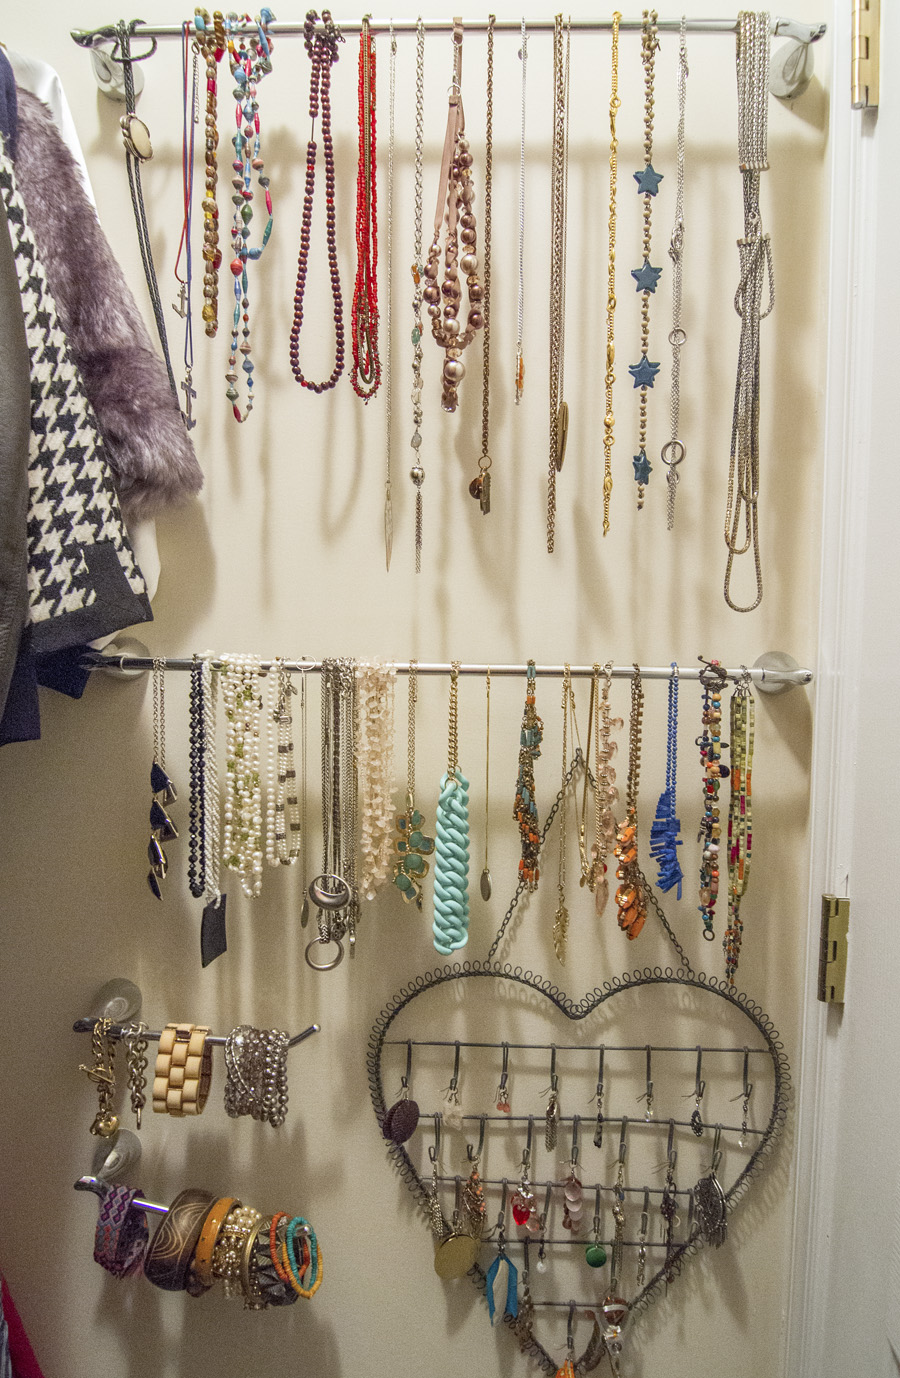 Towel and toilet paper racks are re-purposed for jewelry organization